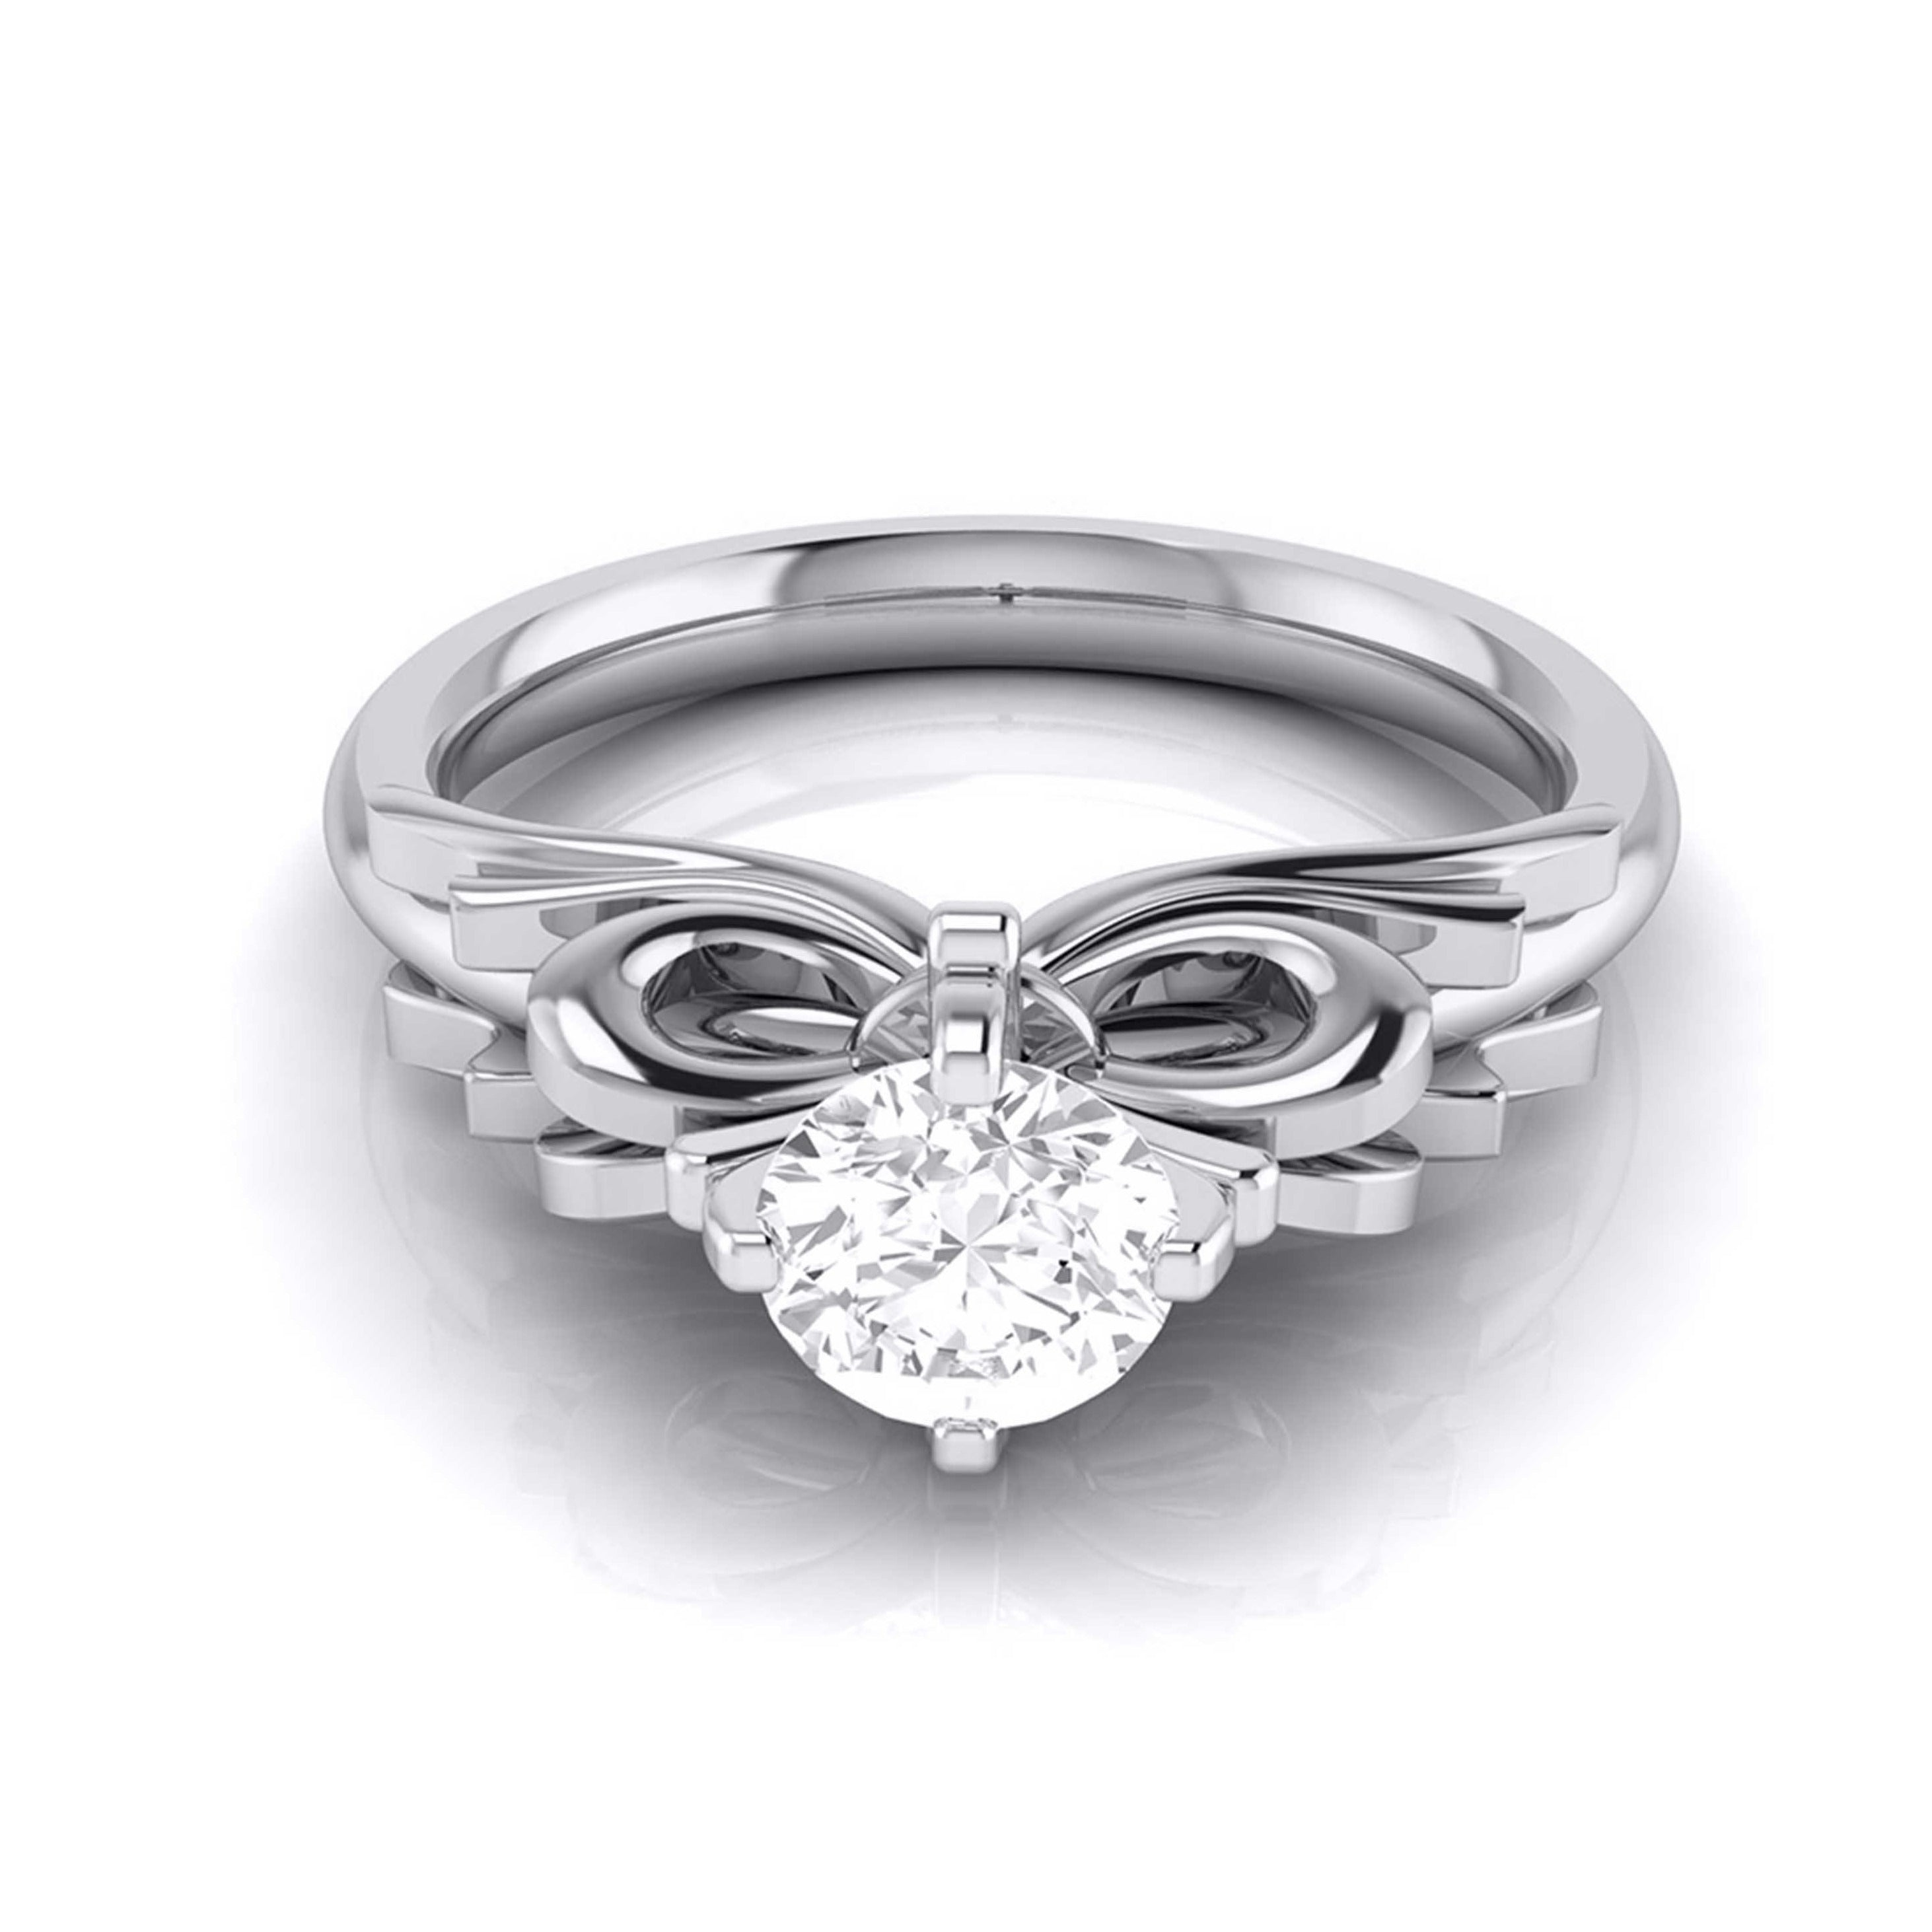 Designer 0.50 cts. Platinum Bow Solitaire Engagement Ring JL PT G-108